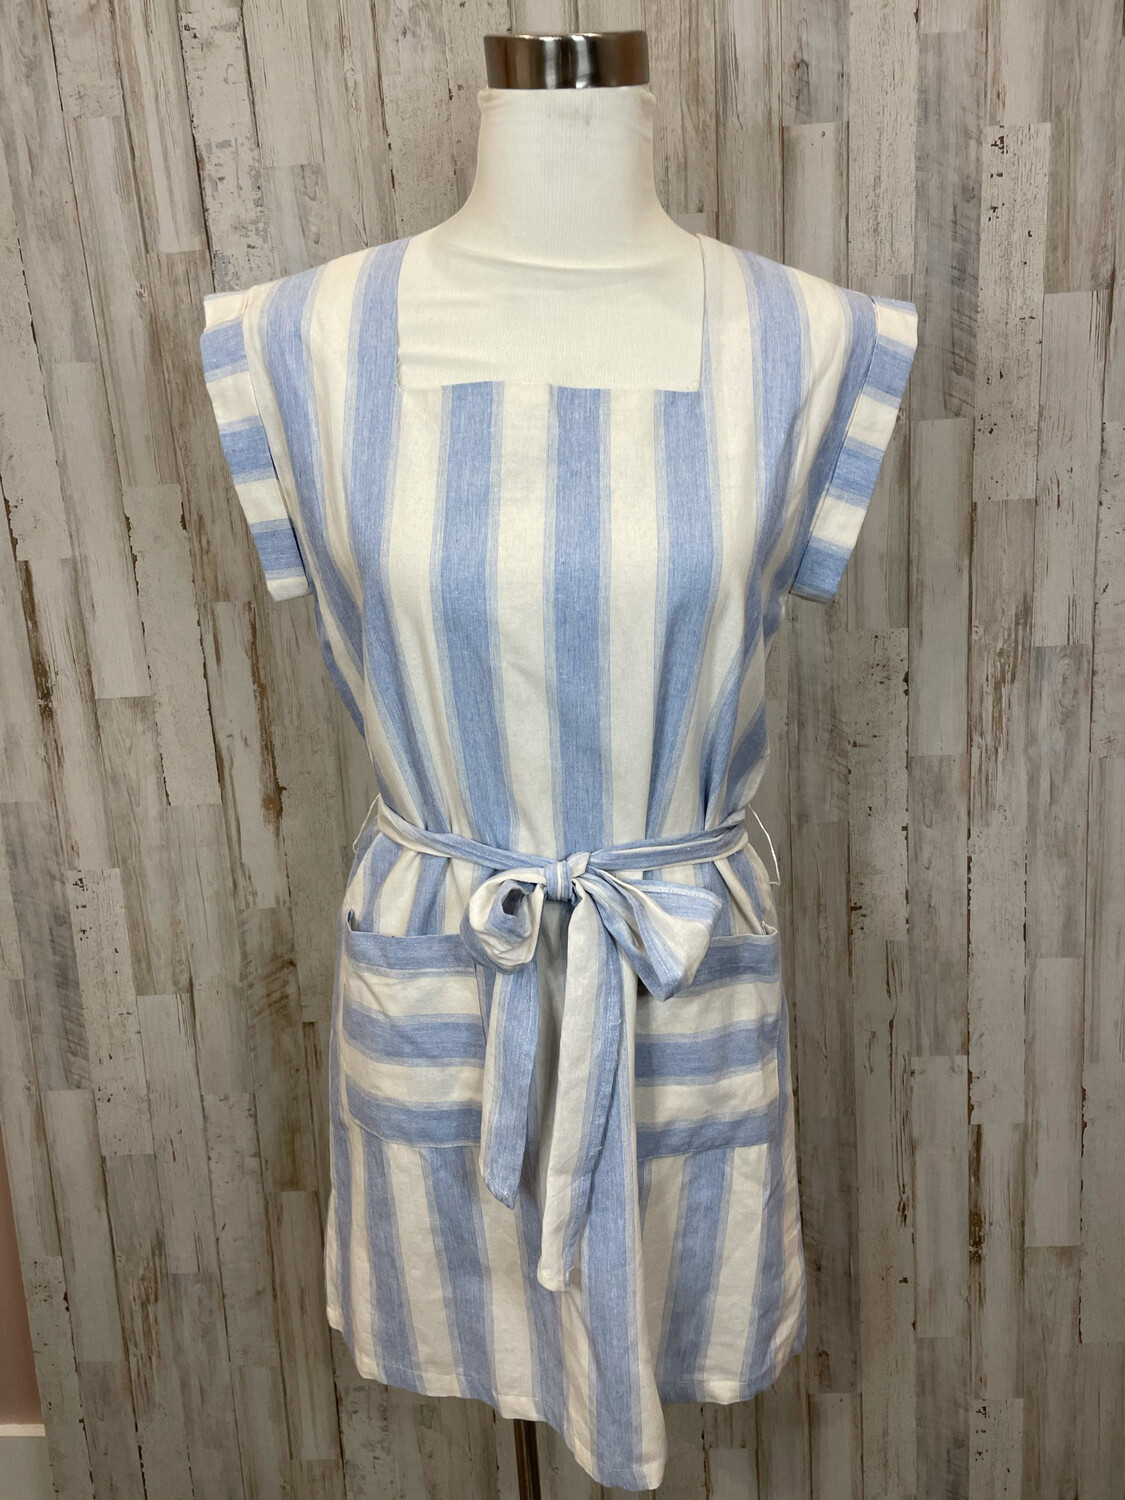 &Merci Blue & White Striped Belted Double Pocket Dress - M